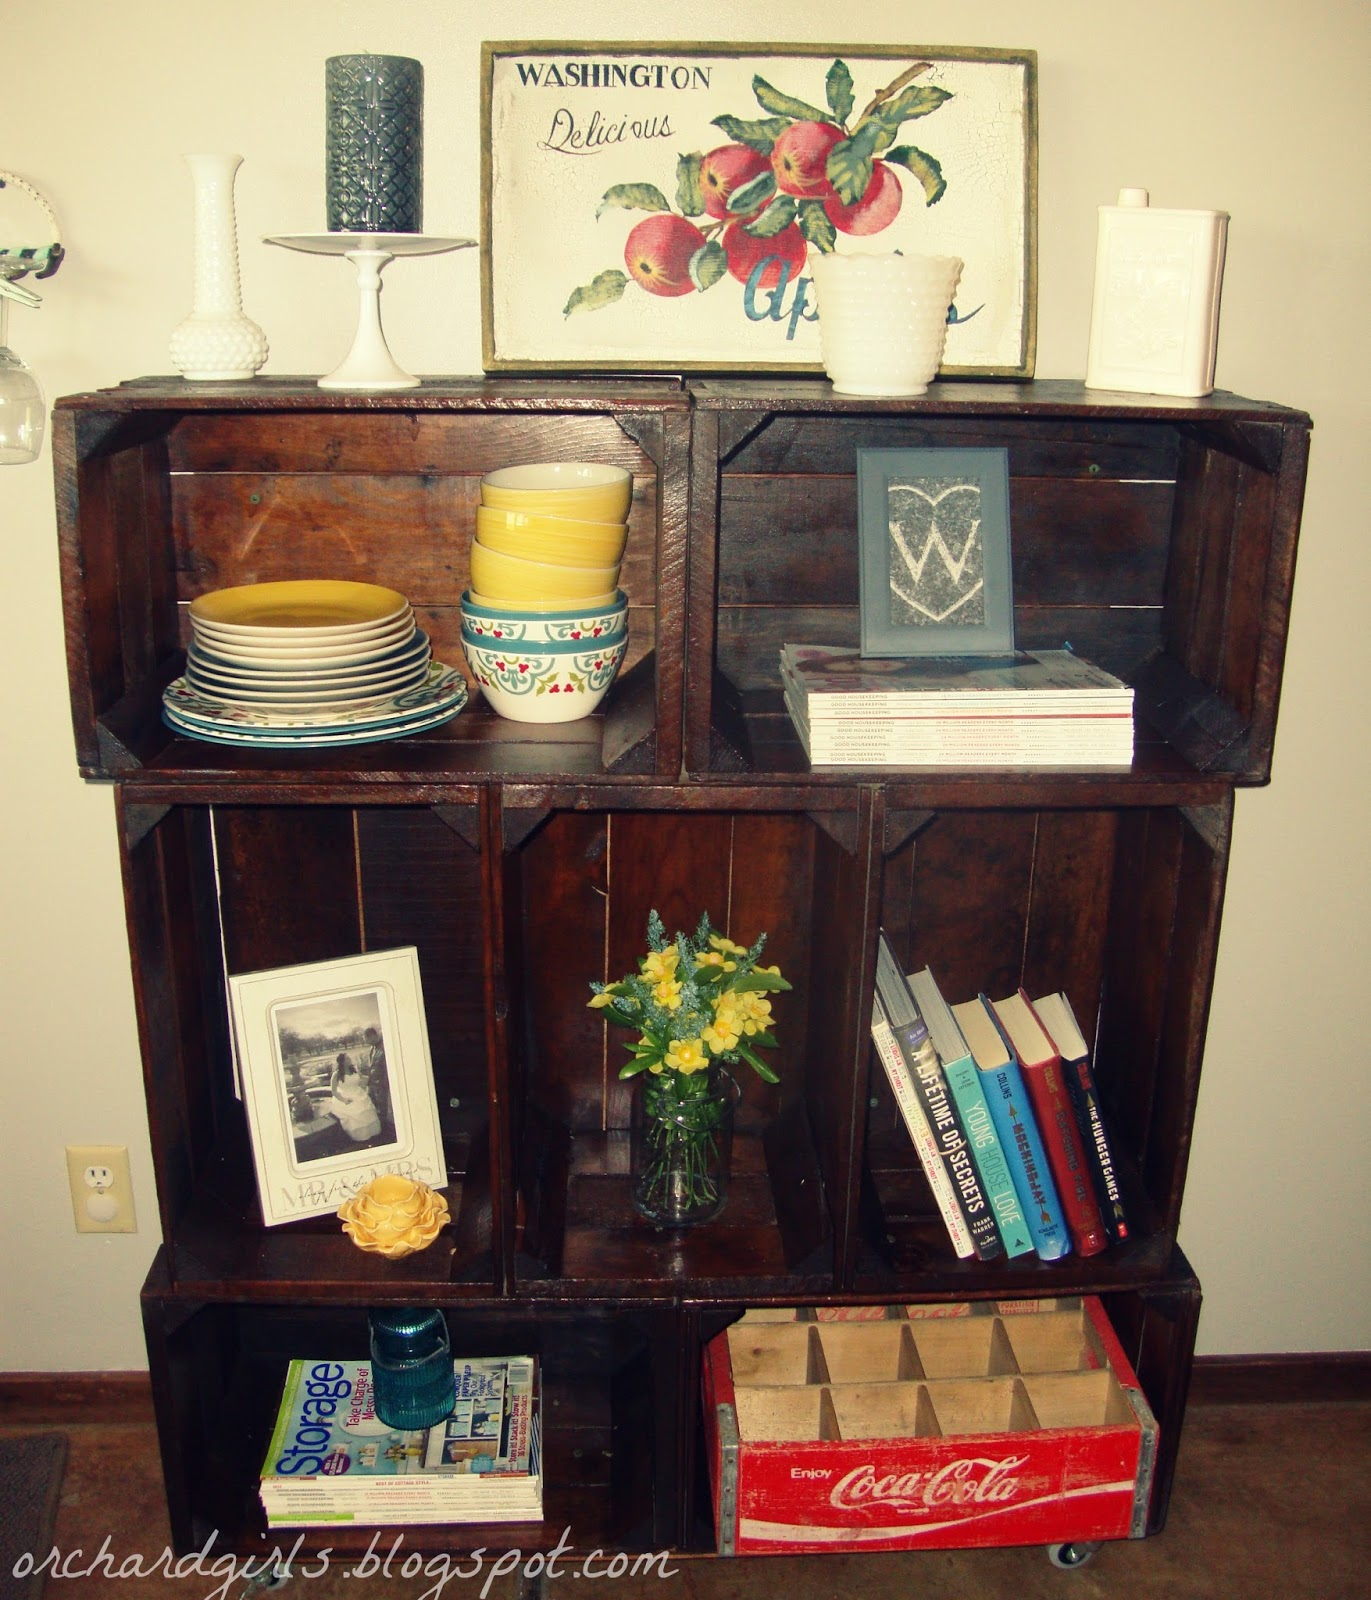 orchard girls diy apple crate bookshelf reveal